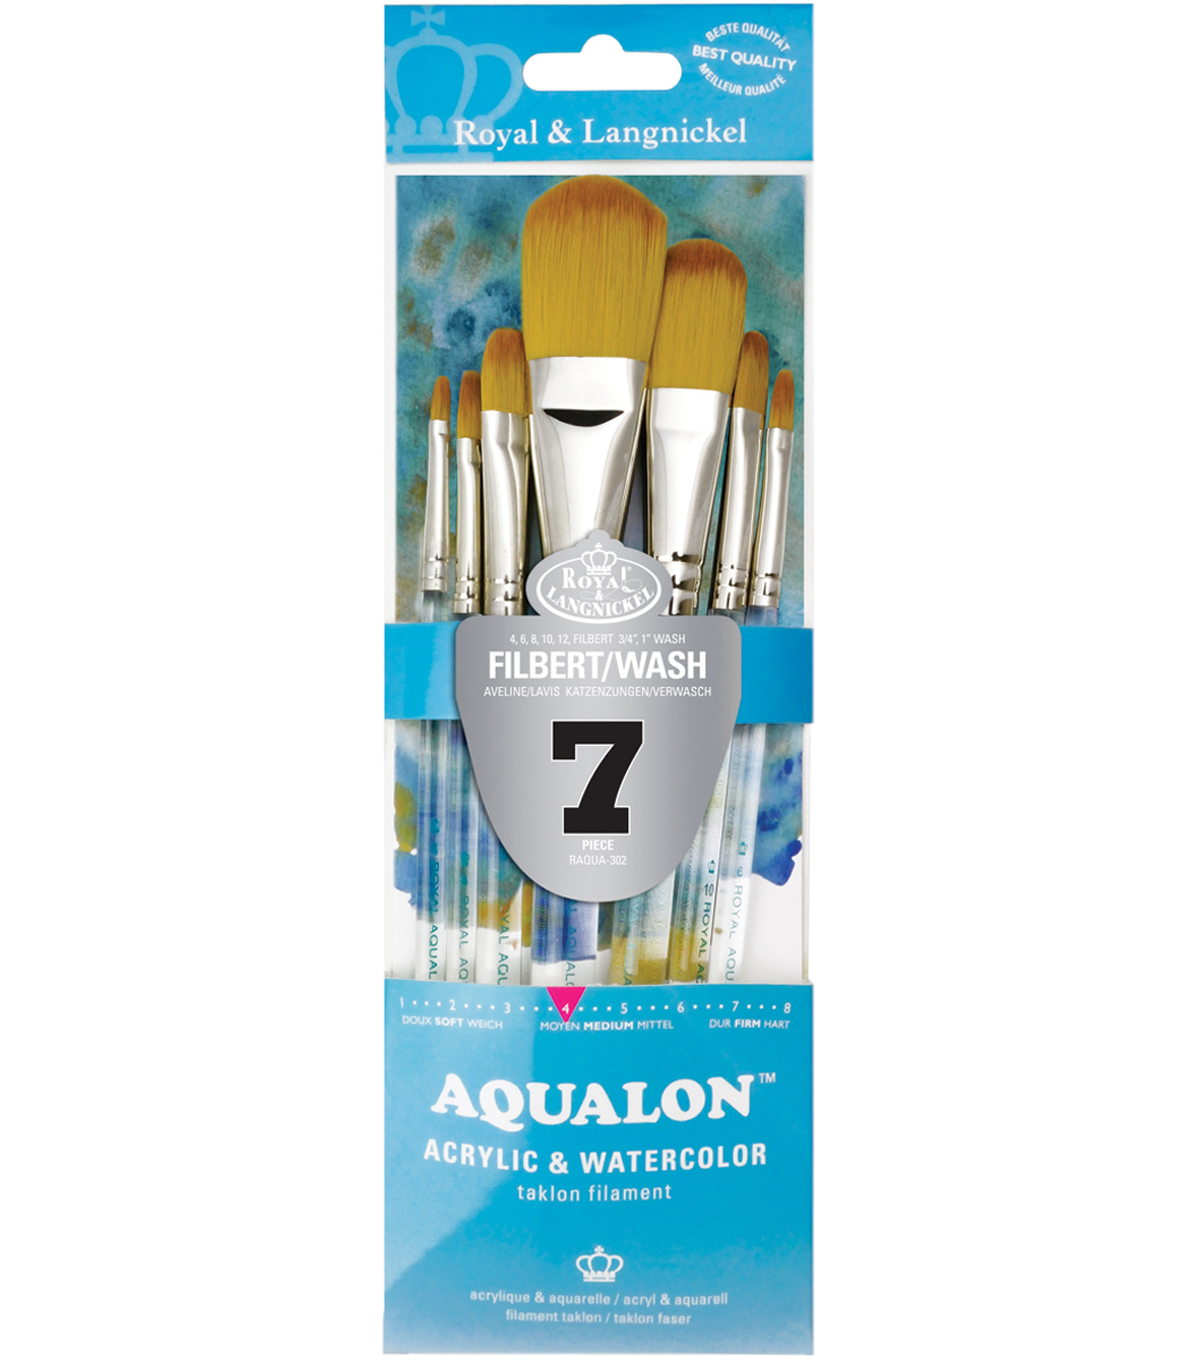 Aqualon Filbert Brush Set-7 Pack